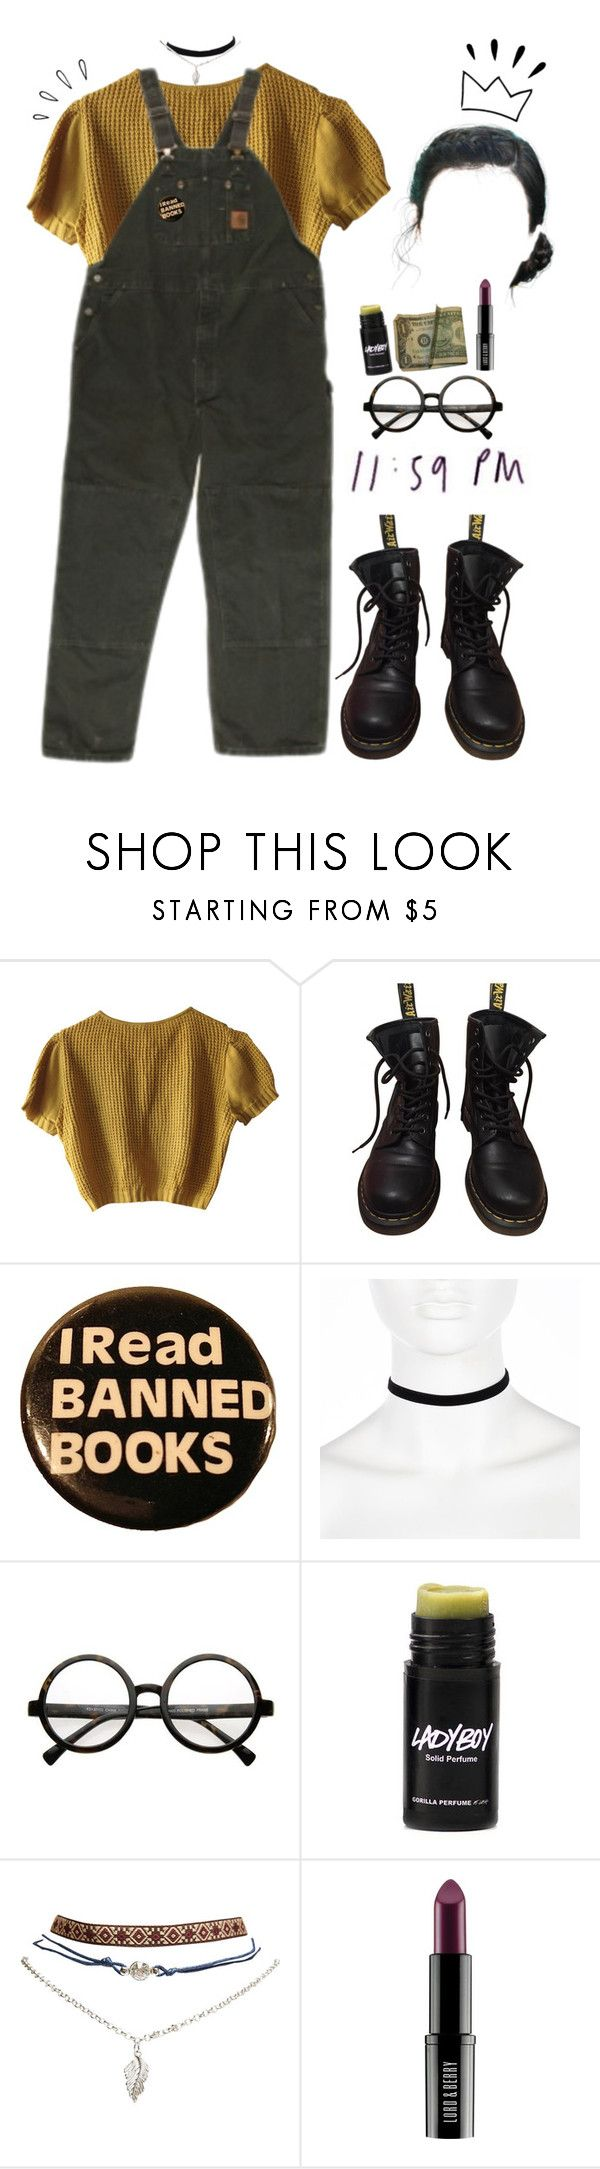 """vintage"" by grunge4lyfe ❤ liked on Polyvore featuring Schumacher, Dr. Martens, Old Navy, River Island, Ladyboy, Wet Seal, Lord & Berry, vintage, ootd and grunge"